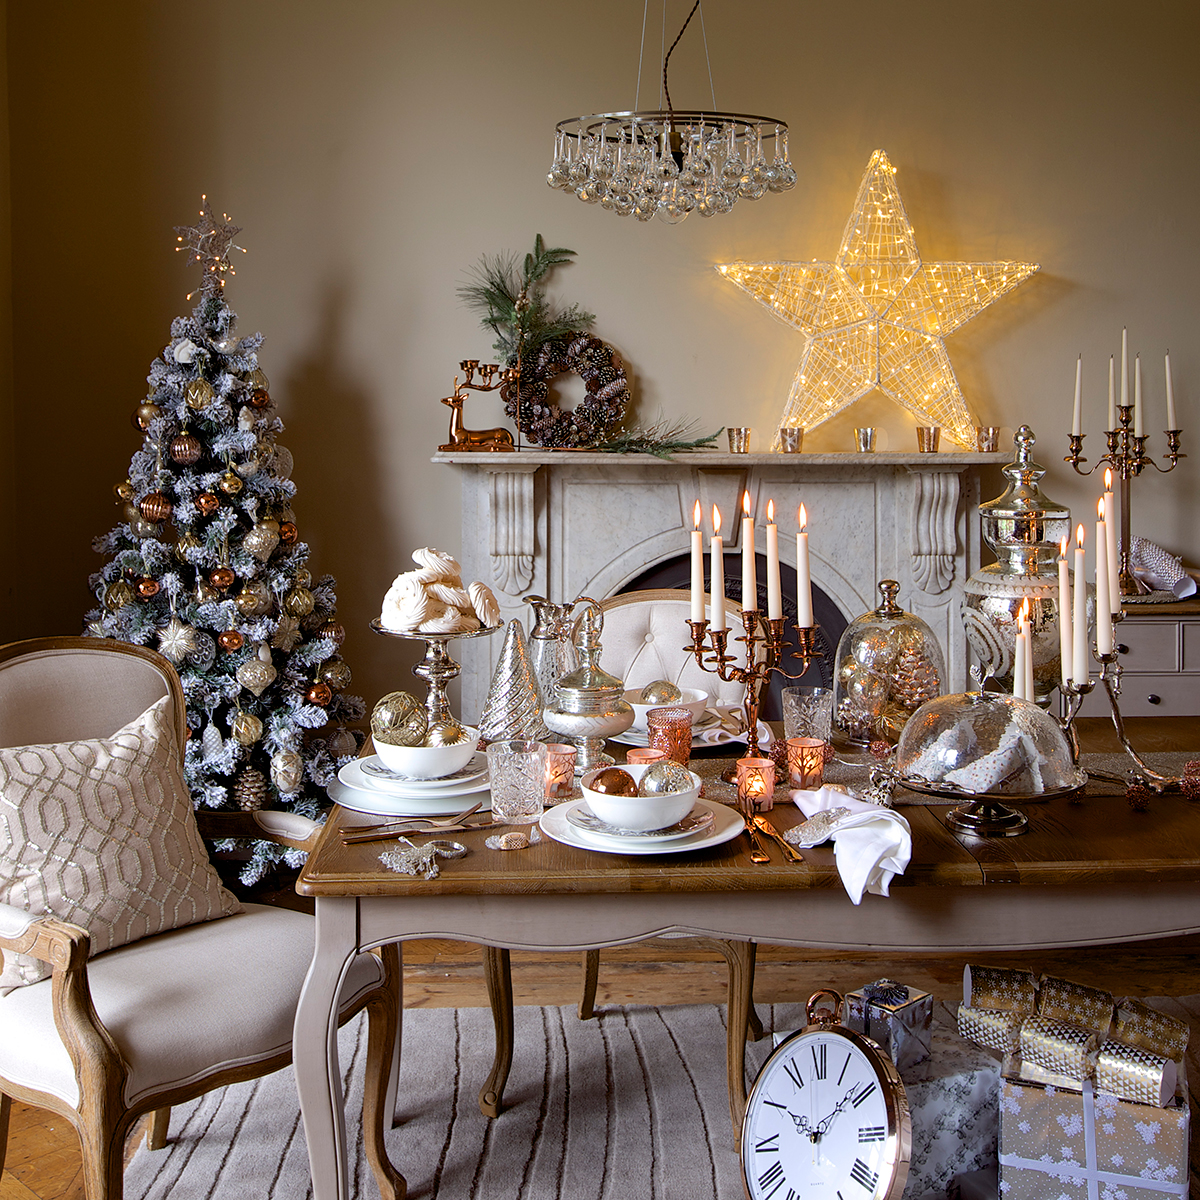 table decoration ideas for festive dining - Christmas decorations ...